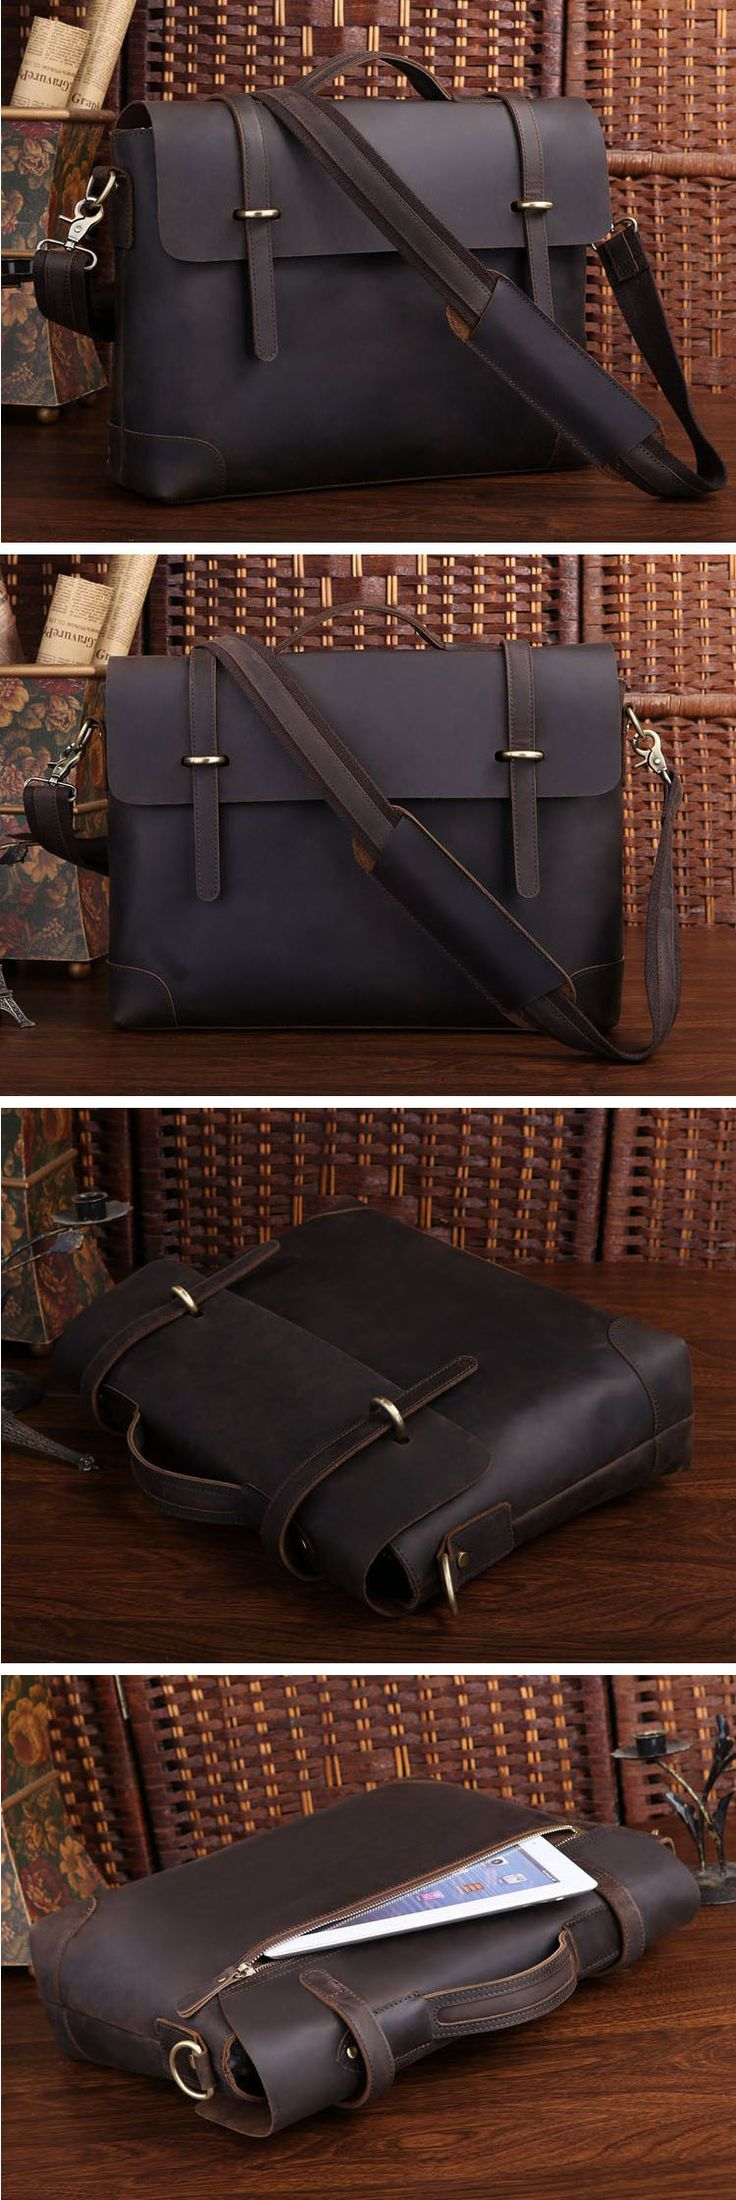 "Crazy Horse leather Briefcase Laptop Messenger Ipad 14"" 15"" Laptop 15"" Macbook Tote Bag"